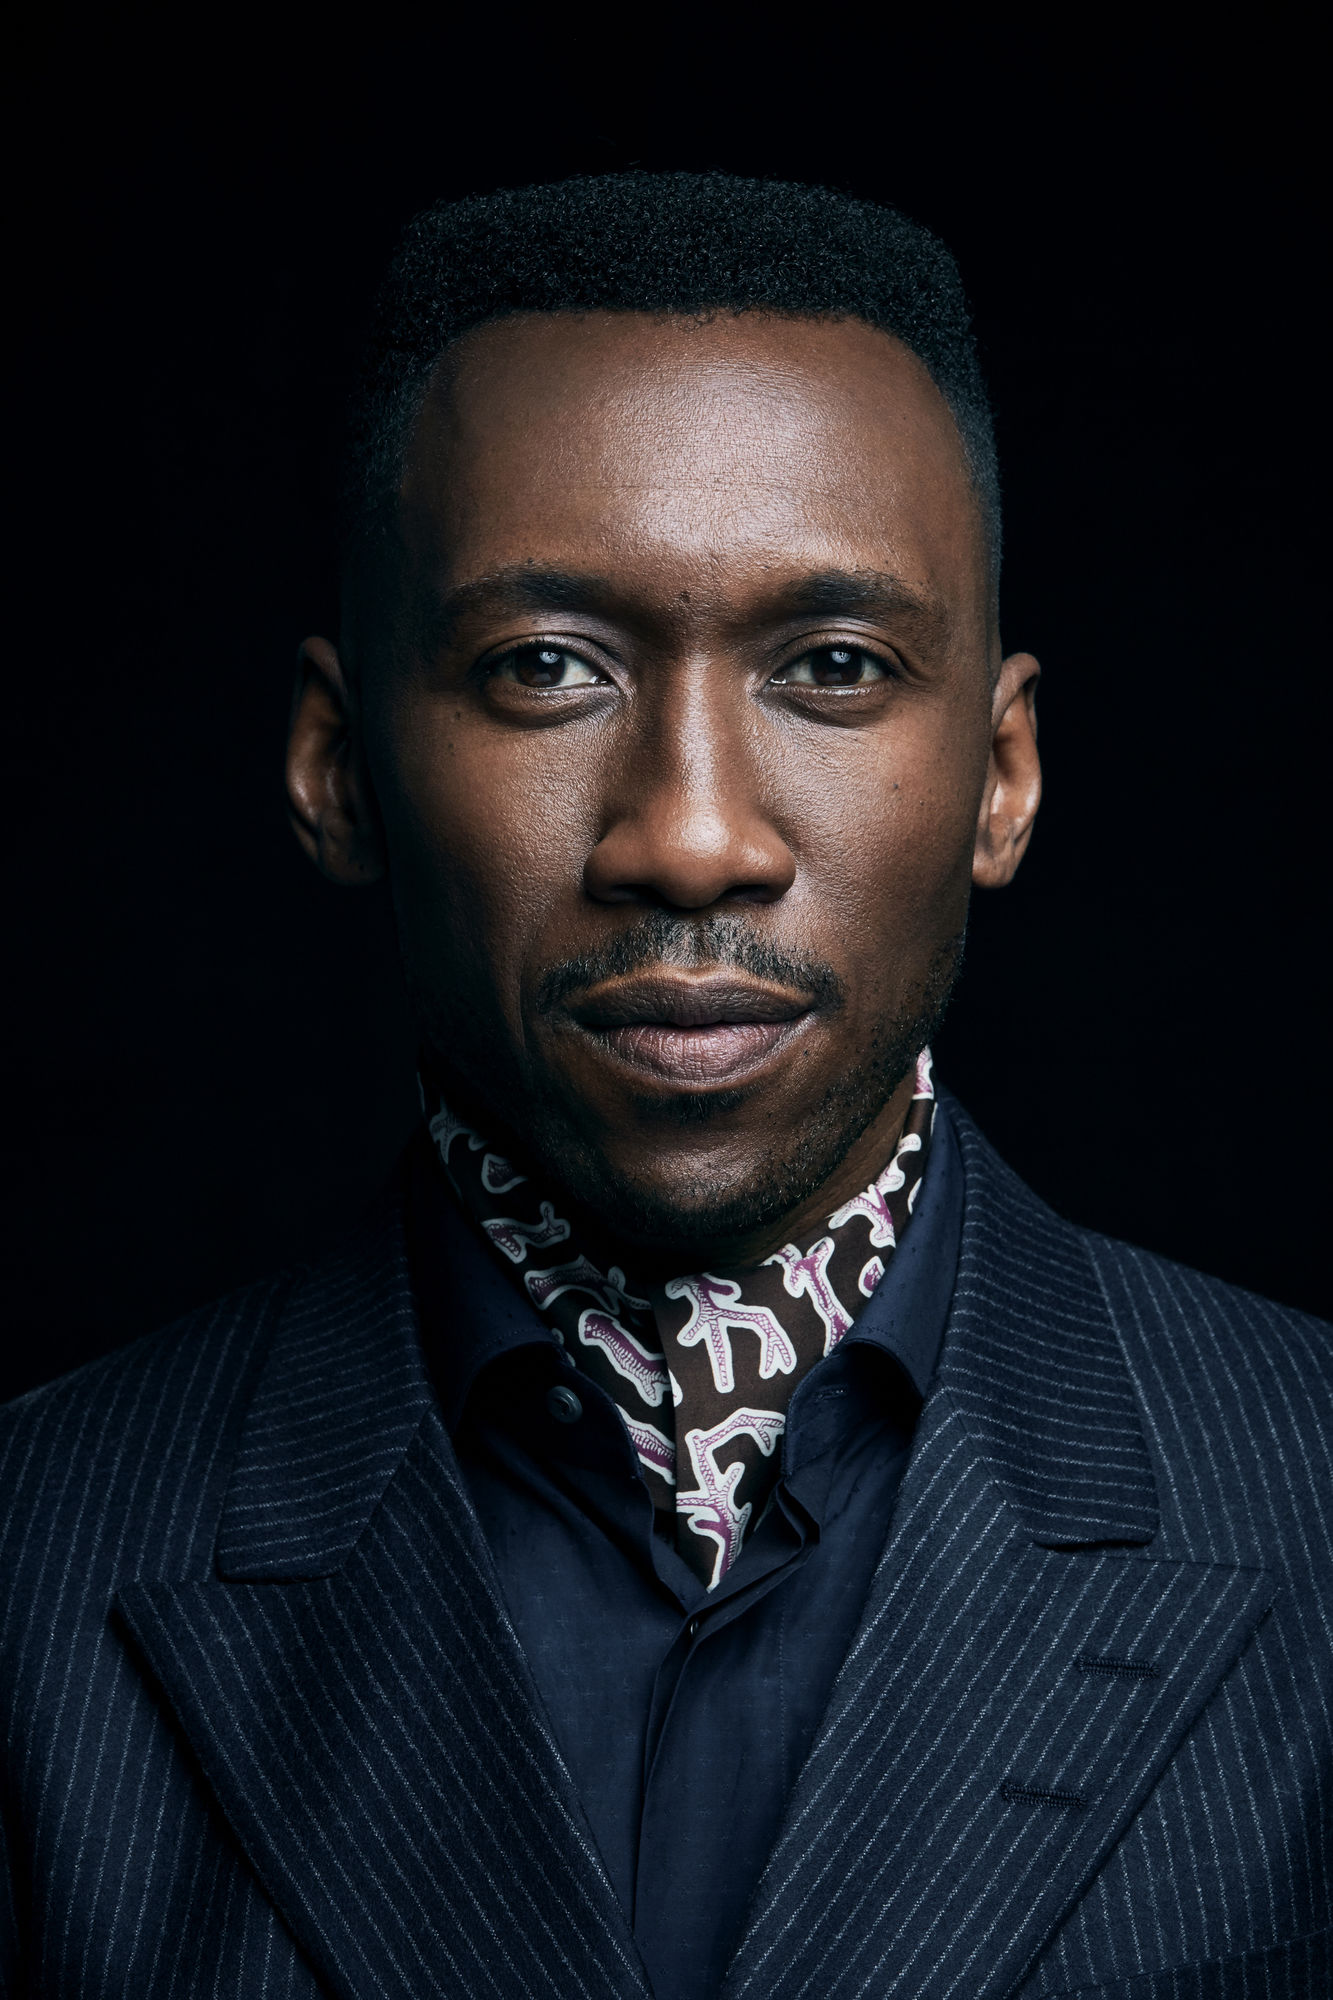 EMILY SHUR c/o GIANT ARTISTS photographed a number of celebrities including Mahershala Ali, Machine Gun Kelly, and Lil Rel Howery during AFI Fest for Entertainment Weekly.